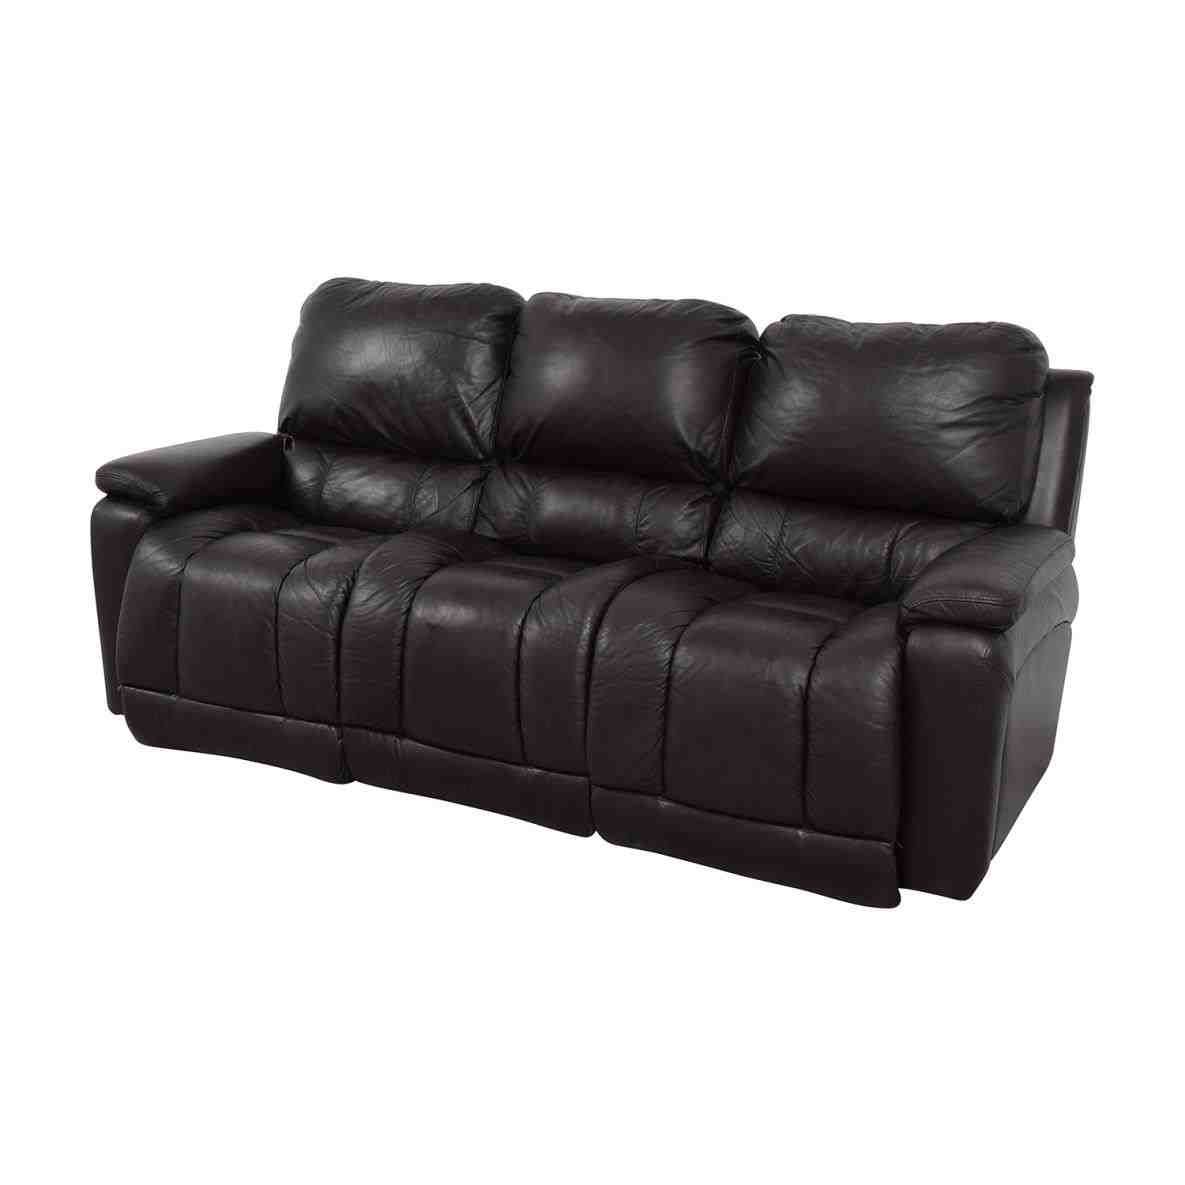 Cheap Recliners Sofa - full size of sofas amazing lazy boy power ...